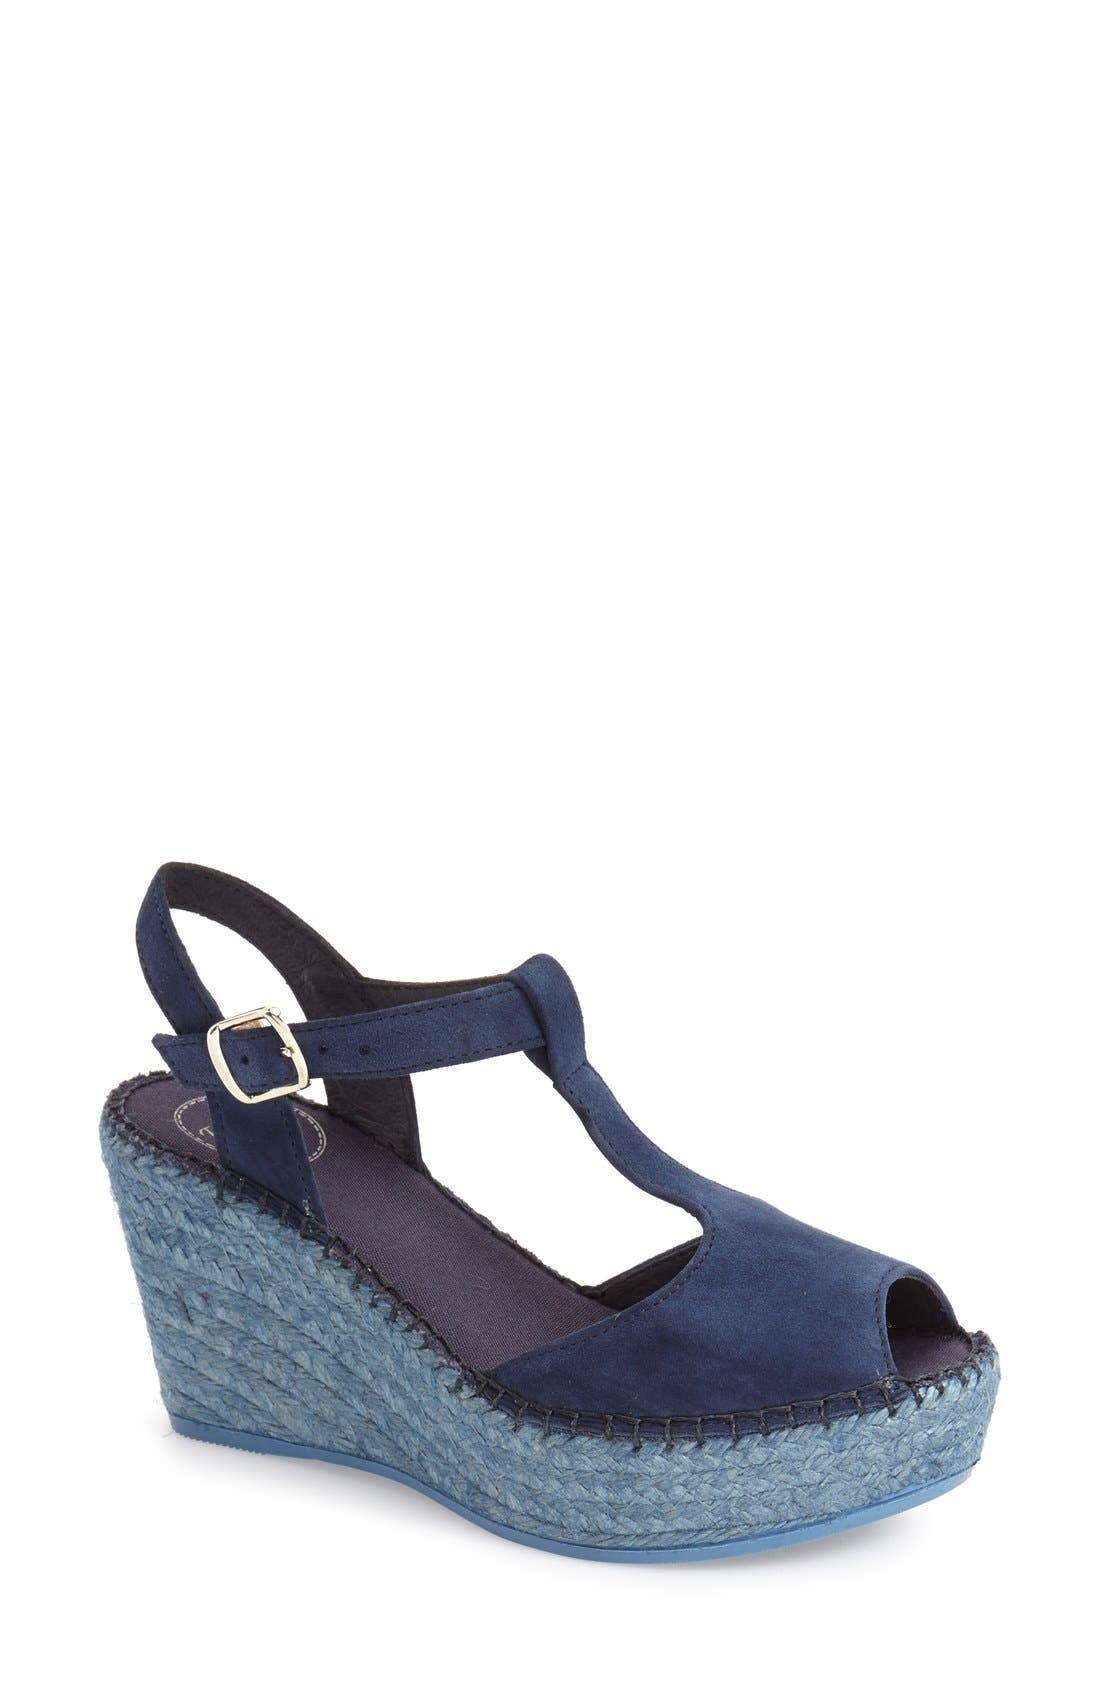 Lidia T-Strap Espadrille Wedge,                         Main,                         color, Navy Suede